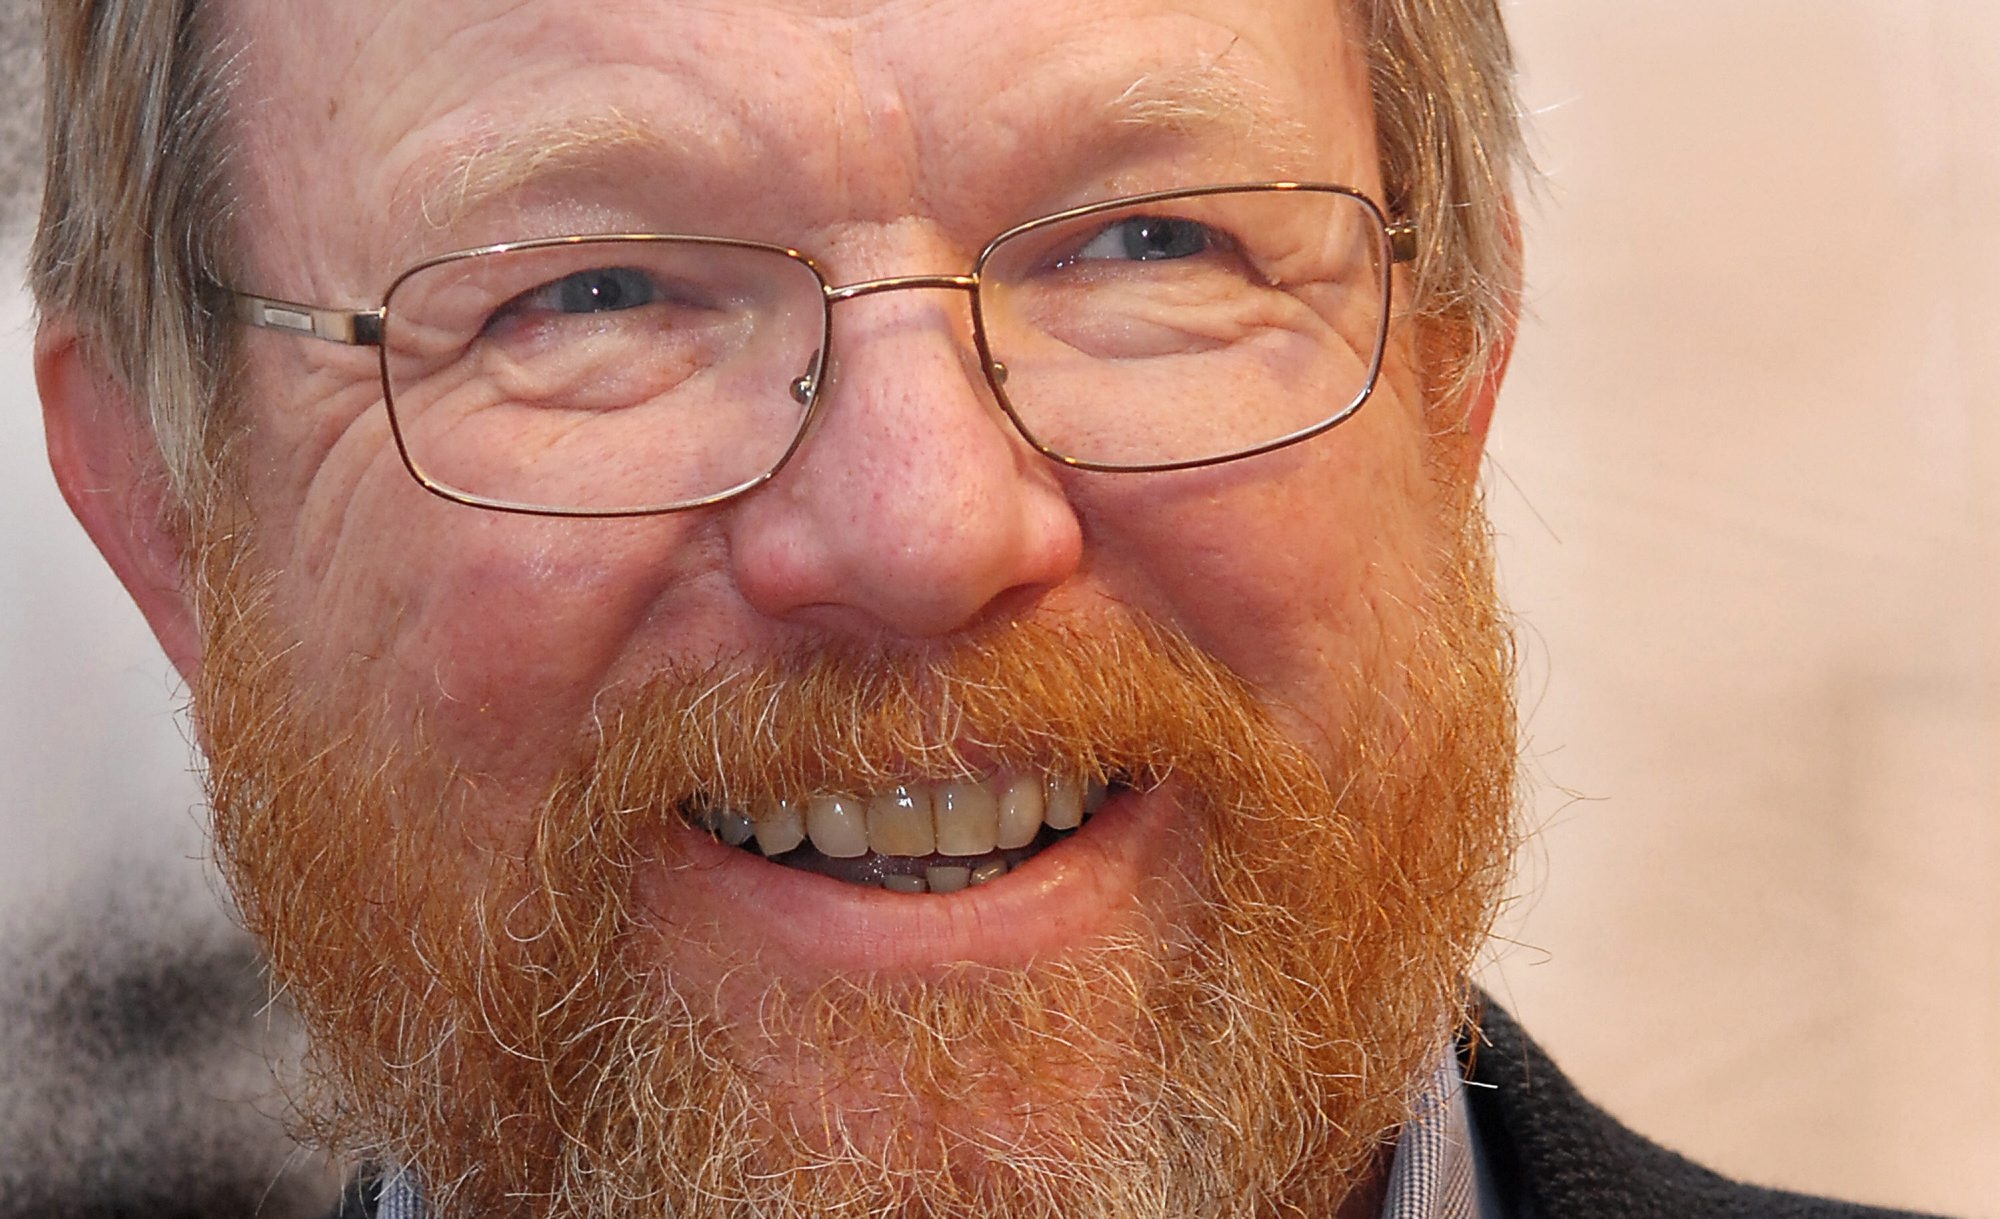 Bill Bryson argues the Great Depression was a conspiracy to manipulate interest rates.